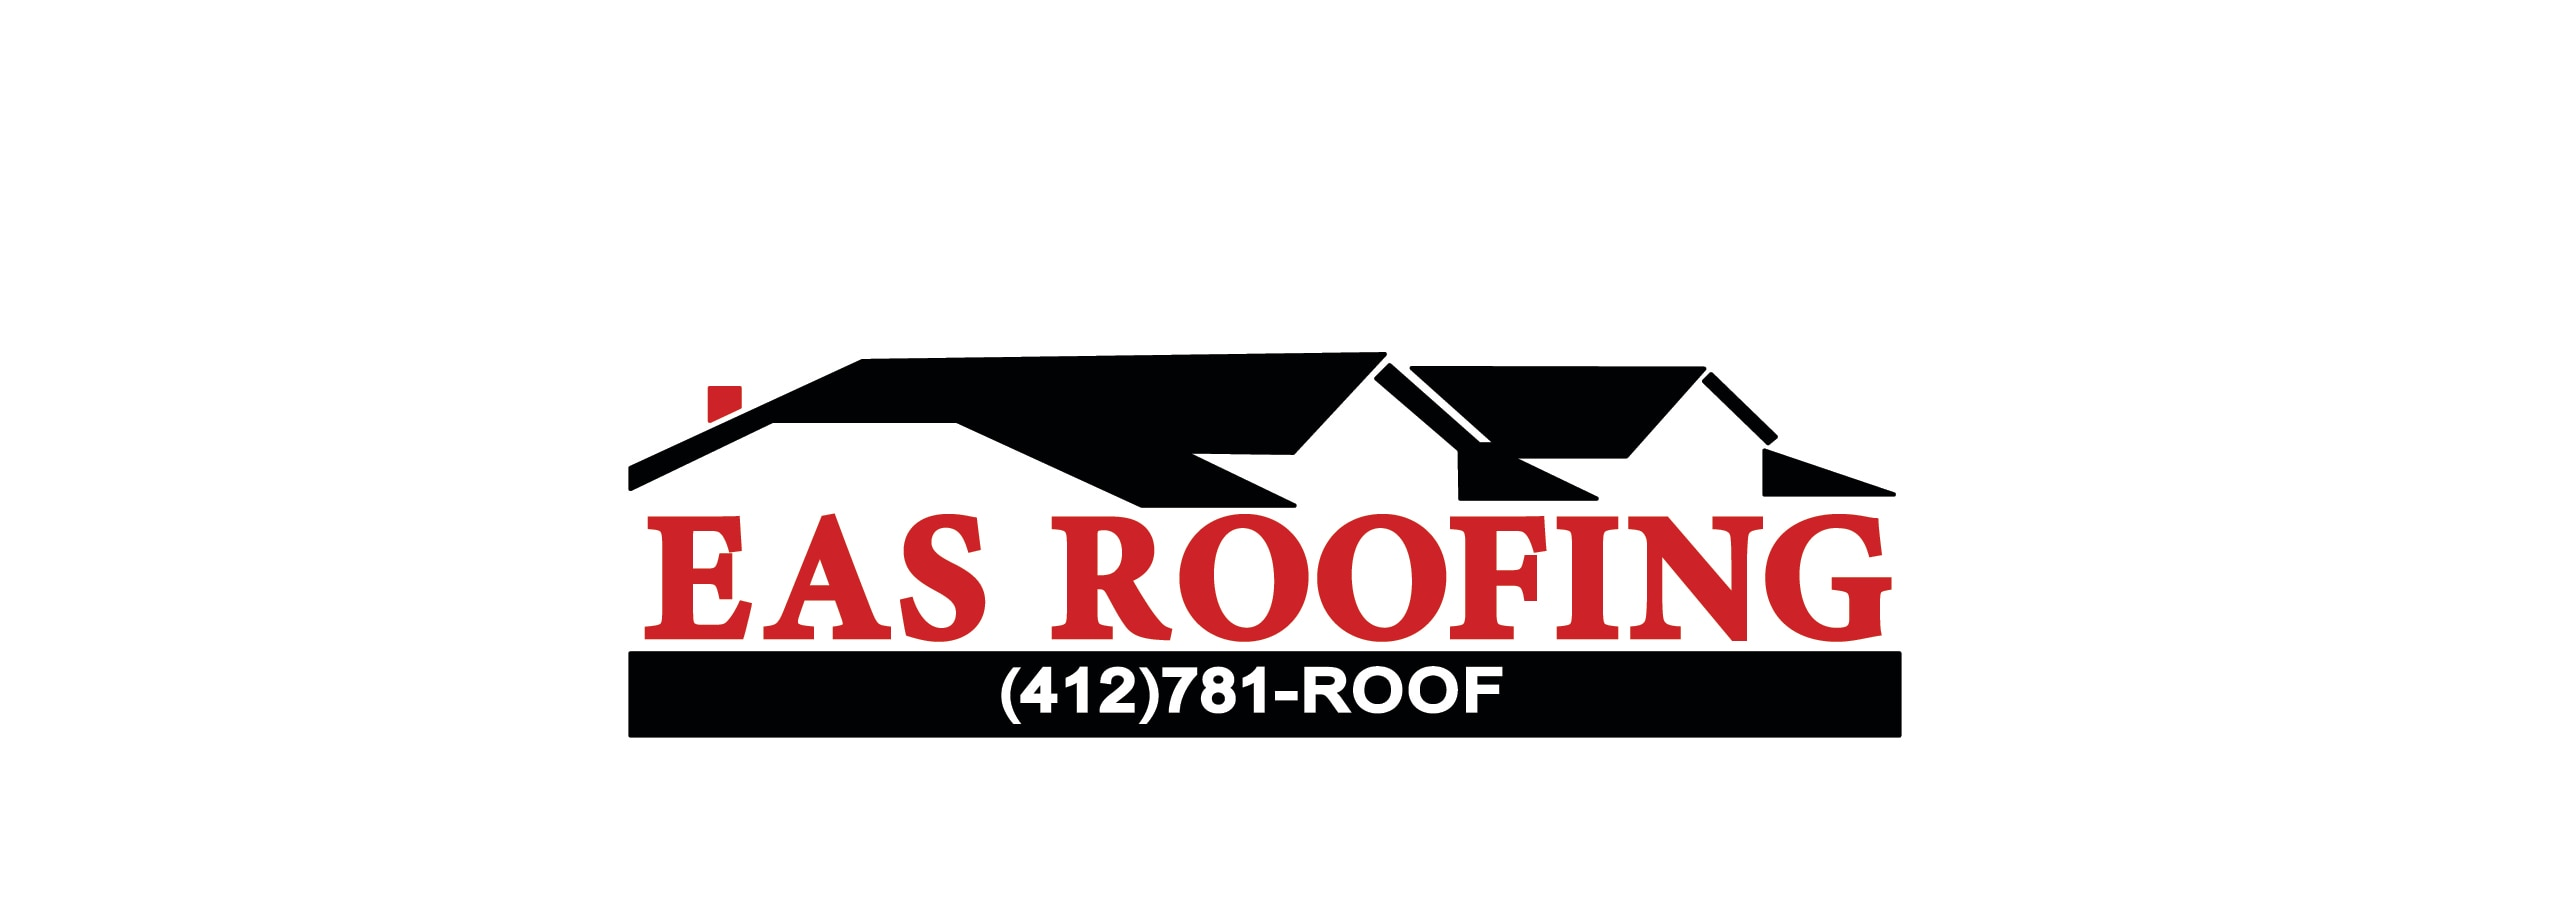 EAS Roofing logo